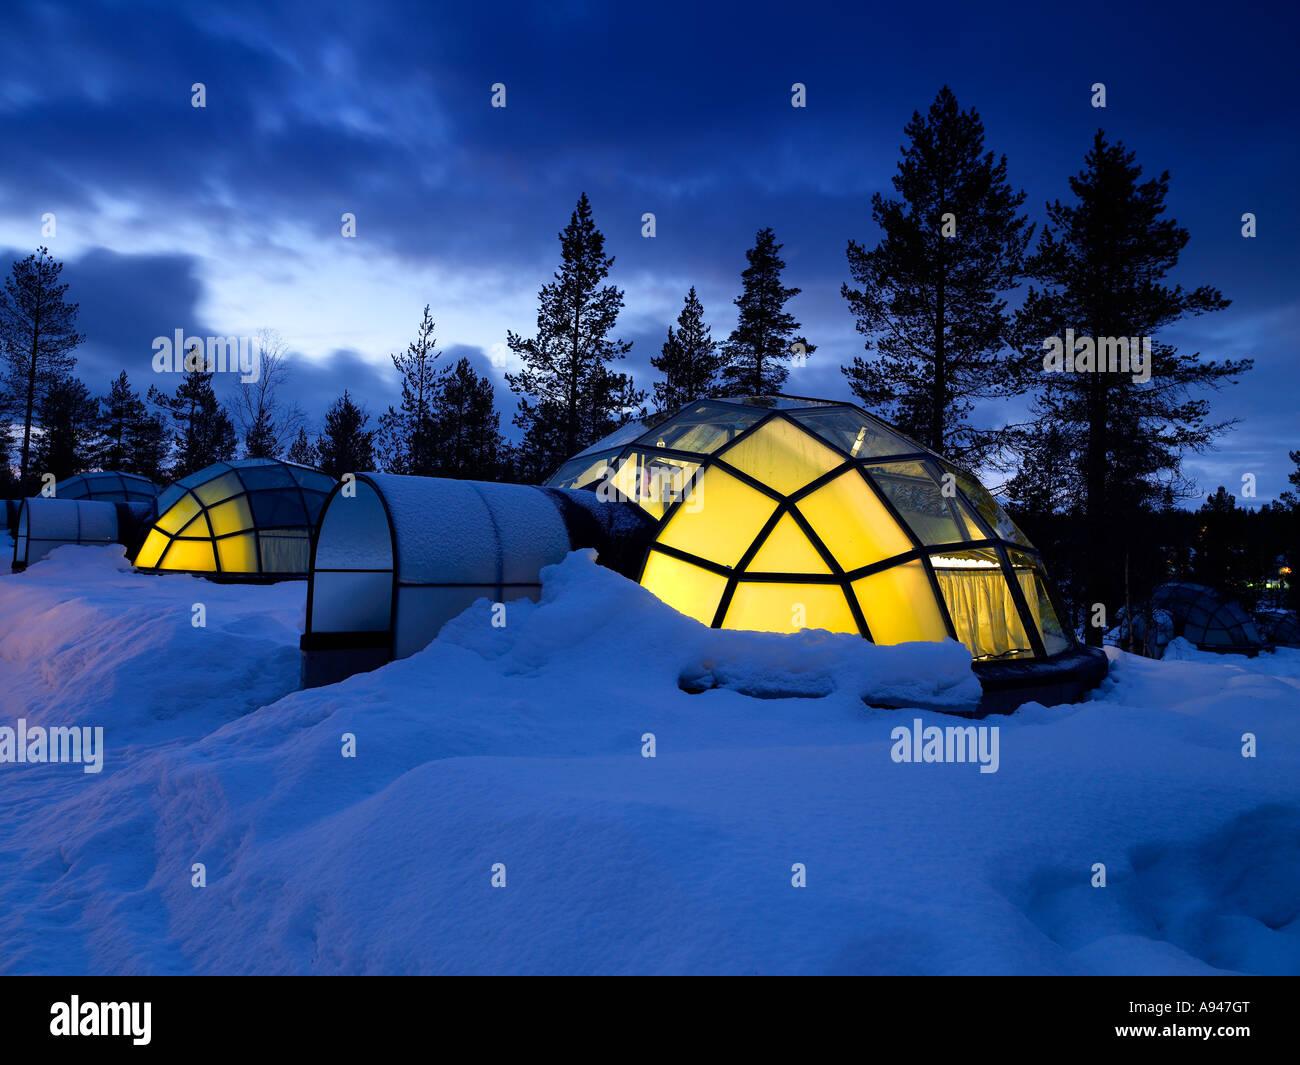 Glass Igloo, night at Hotel and Igloo Village, Kakslauttanen, located in the Saariselk fell area of Lapland, Finland